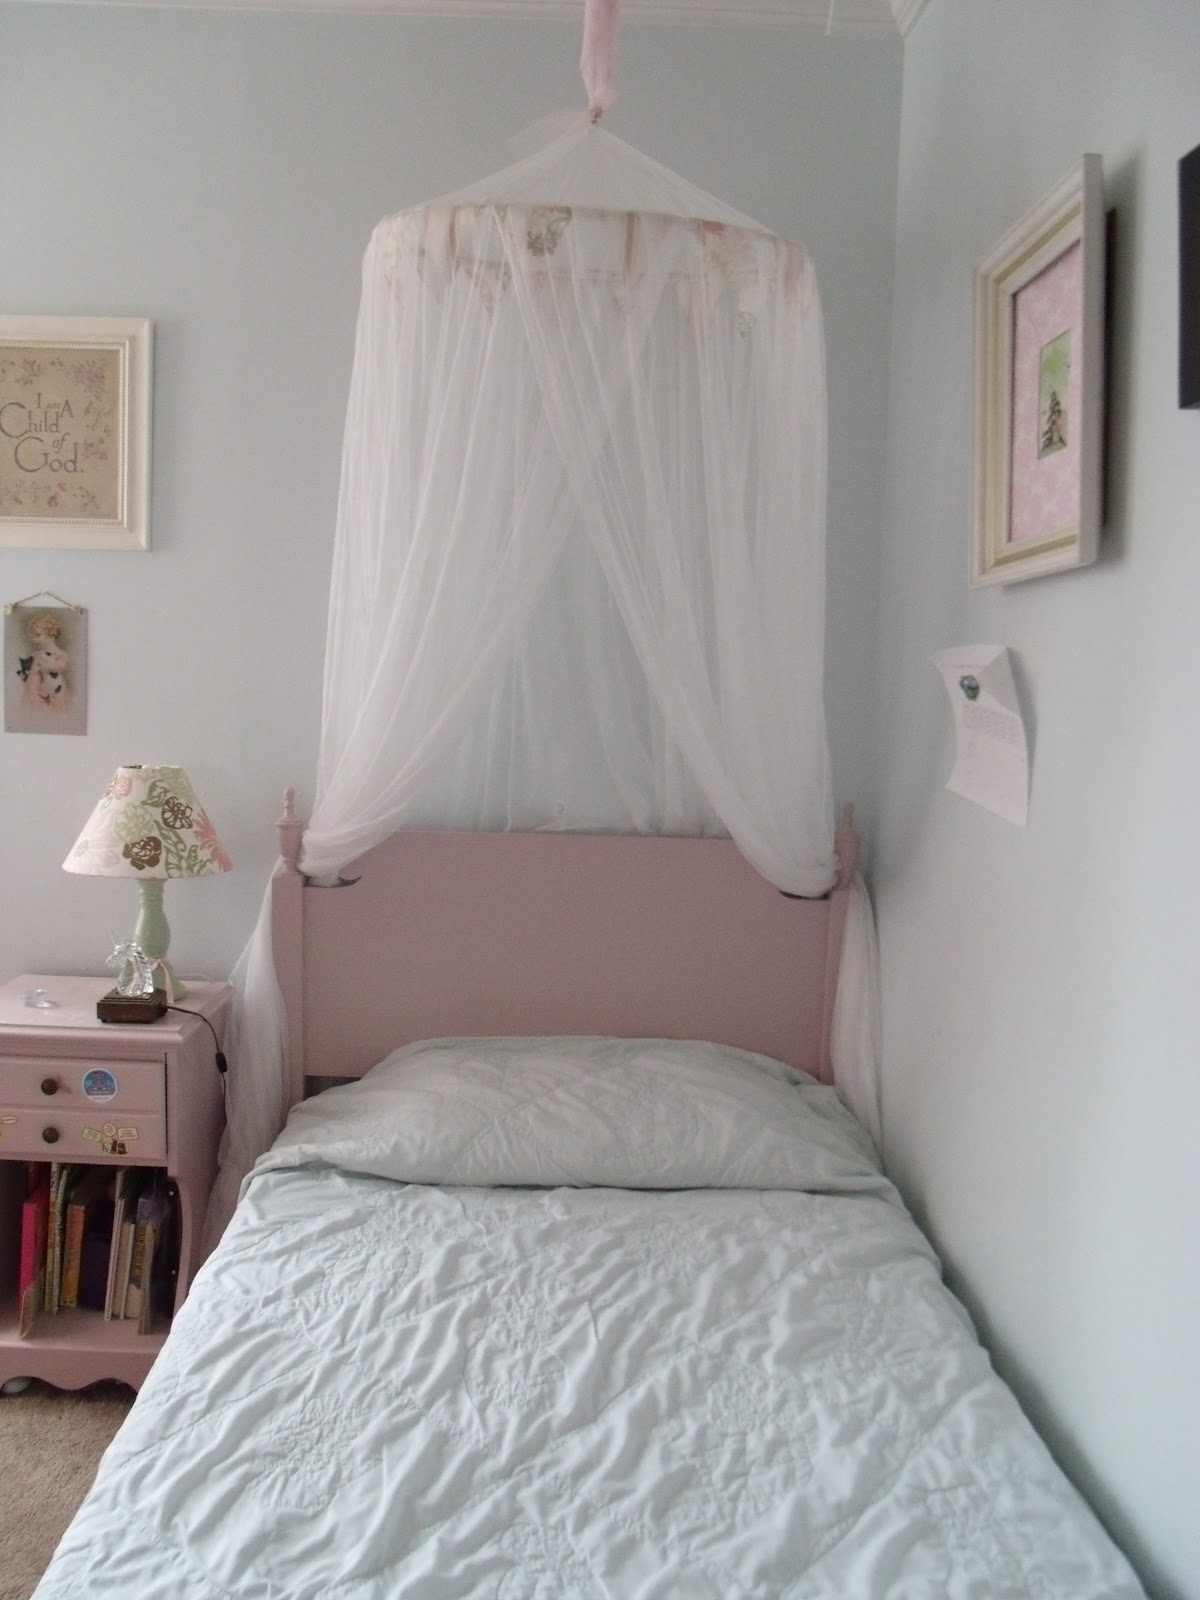 reclaim renew remodel shabby chic style bed canopy. Black Bedroom Furniture Sets. Home Design Ideas